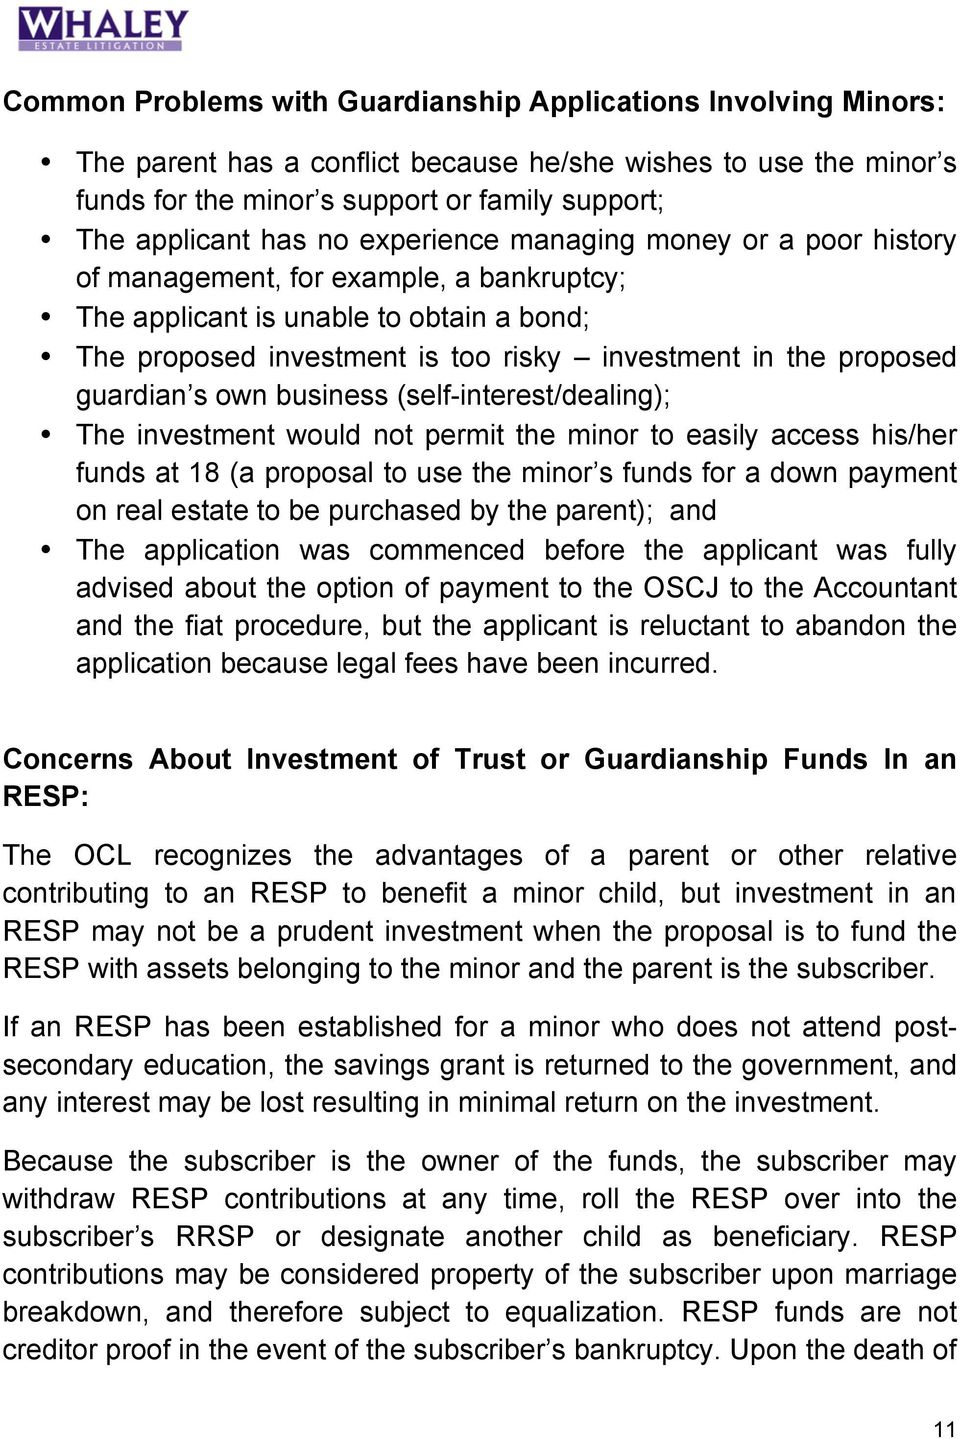 guardian s own business (self-interest/dealing); The investment would not permit the minor to easily access his/her funds at 18 (a proposal to use the minor s funds for a down payment on real estate